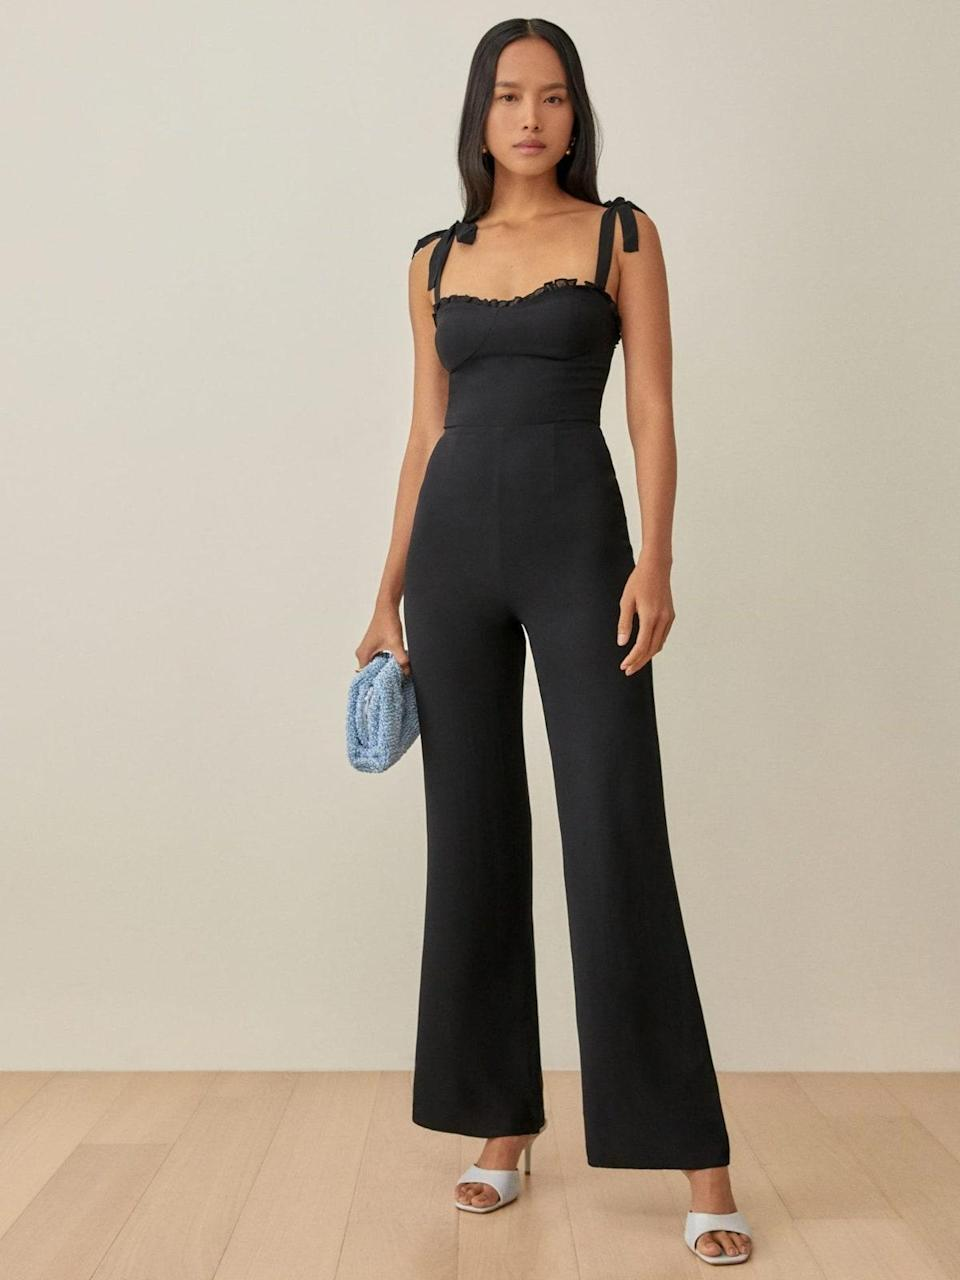 """A wide-leg jumpsuit is definitely a bold choice amid a sea of long wrap dresses and stately ball gowns, though this Reformation number is one we can all get behind. $248, Reformation. <a href=""""https://www.thereformation.com/products/alfred-jumpsuit?color=Black"""" rel=""""nofollow noopener"""" target=""""_blank"""" data-ylk=""""slk:Get it now!"""" class=""""link rapid-noclick-resp"""">Get it now!</a>"""